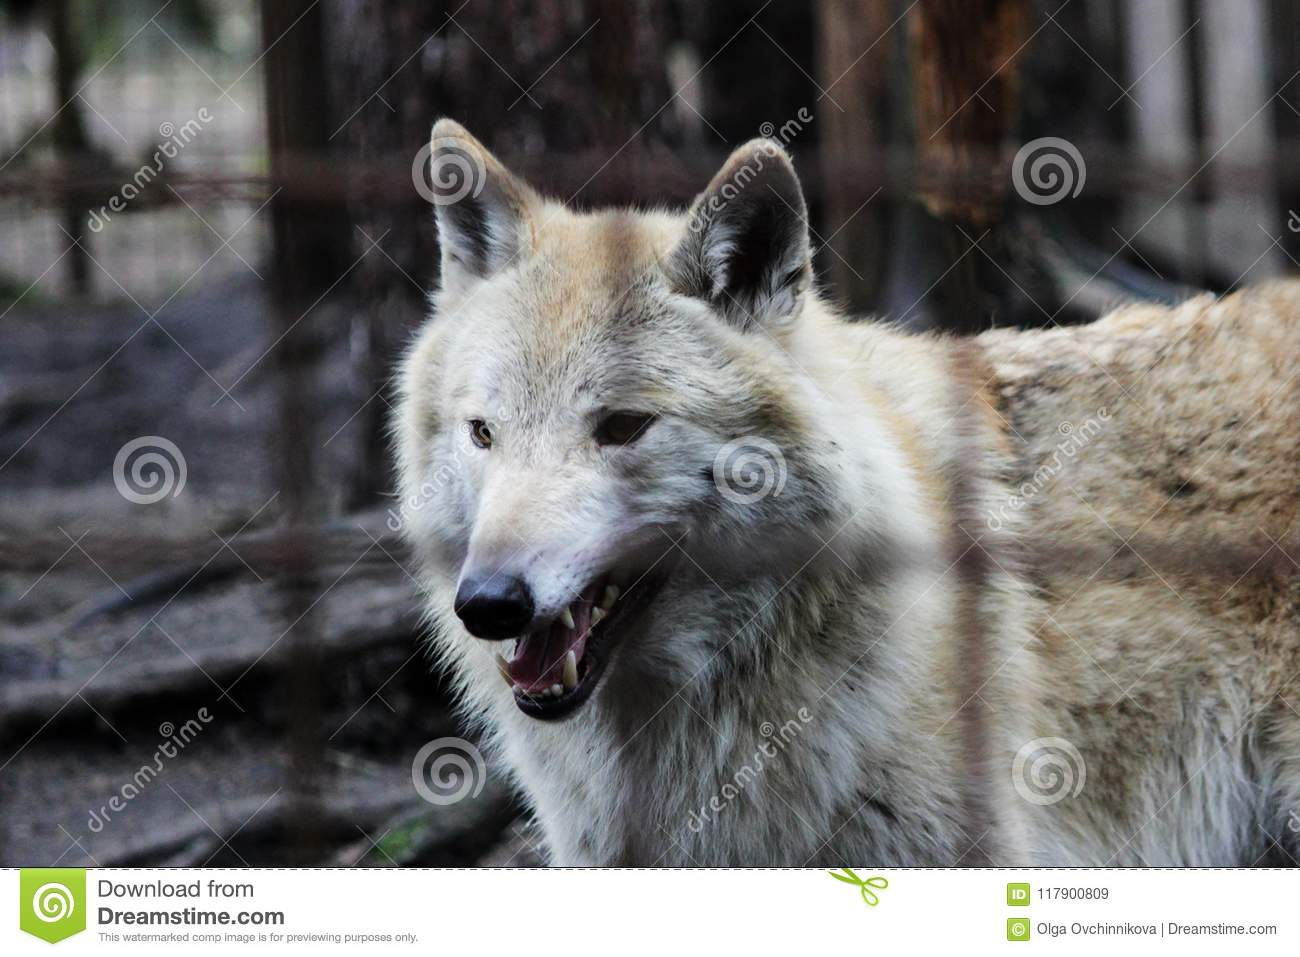 Polar Wolf Behind Bars, Summer Color Canis Lupus Tundrarum